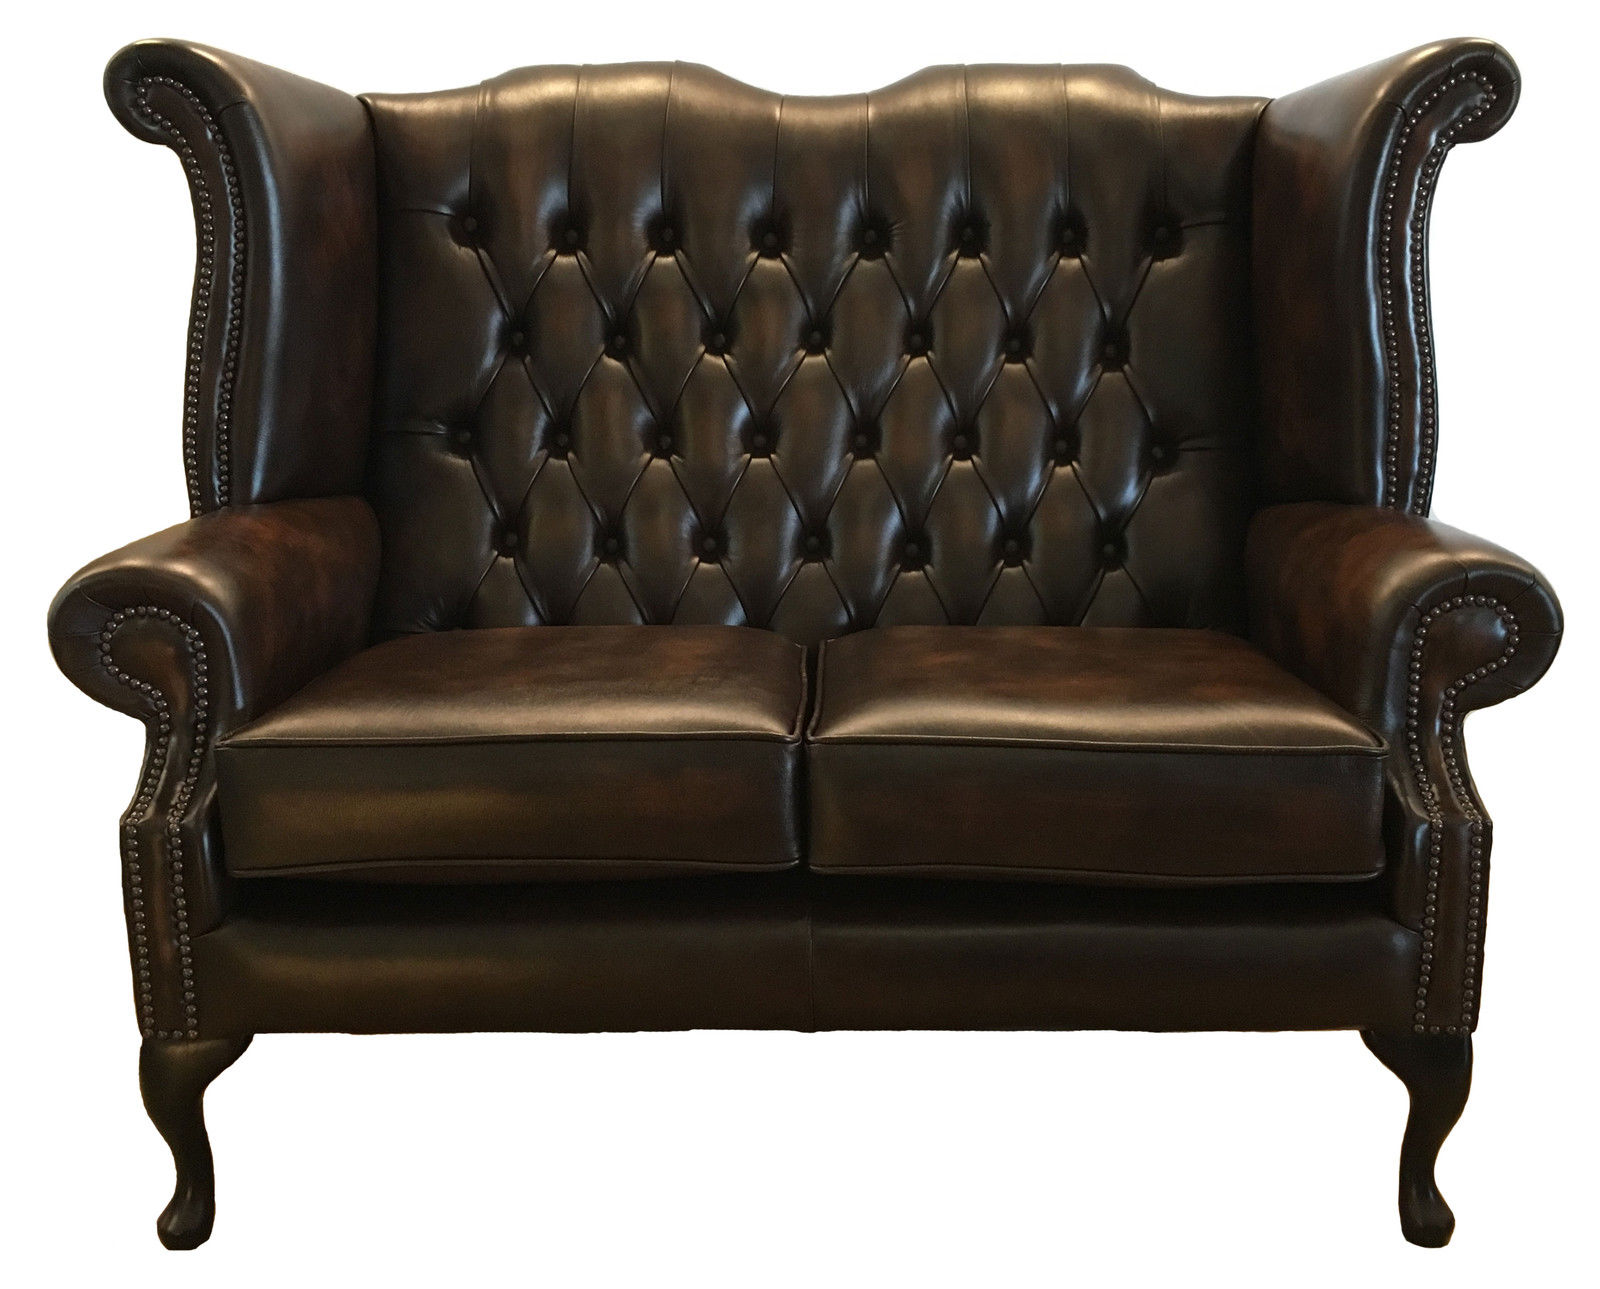 sofa queen antique queen anne leather chesterfield sofa. Black Bedroom Furniture Sets. Home Design Ideas